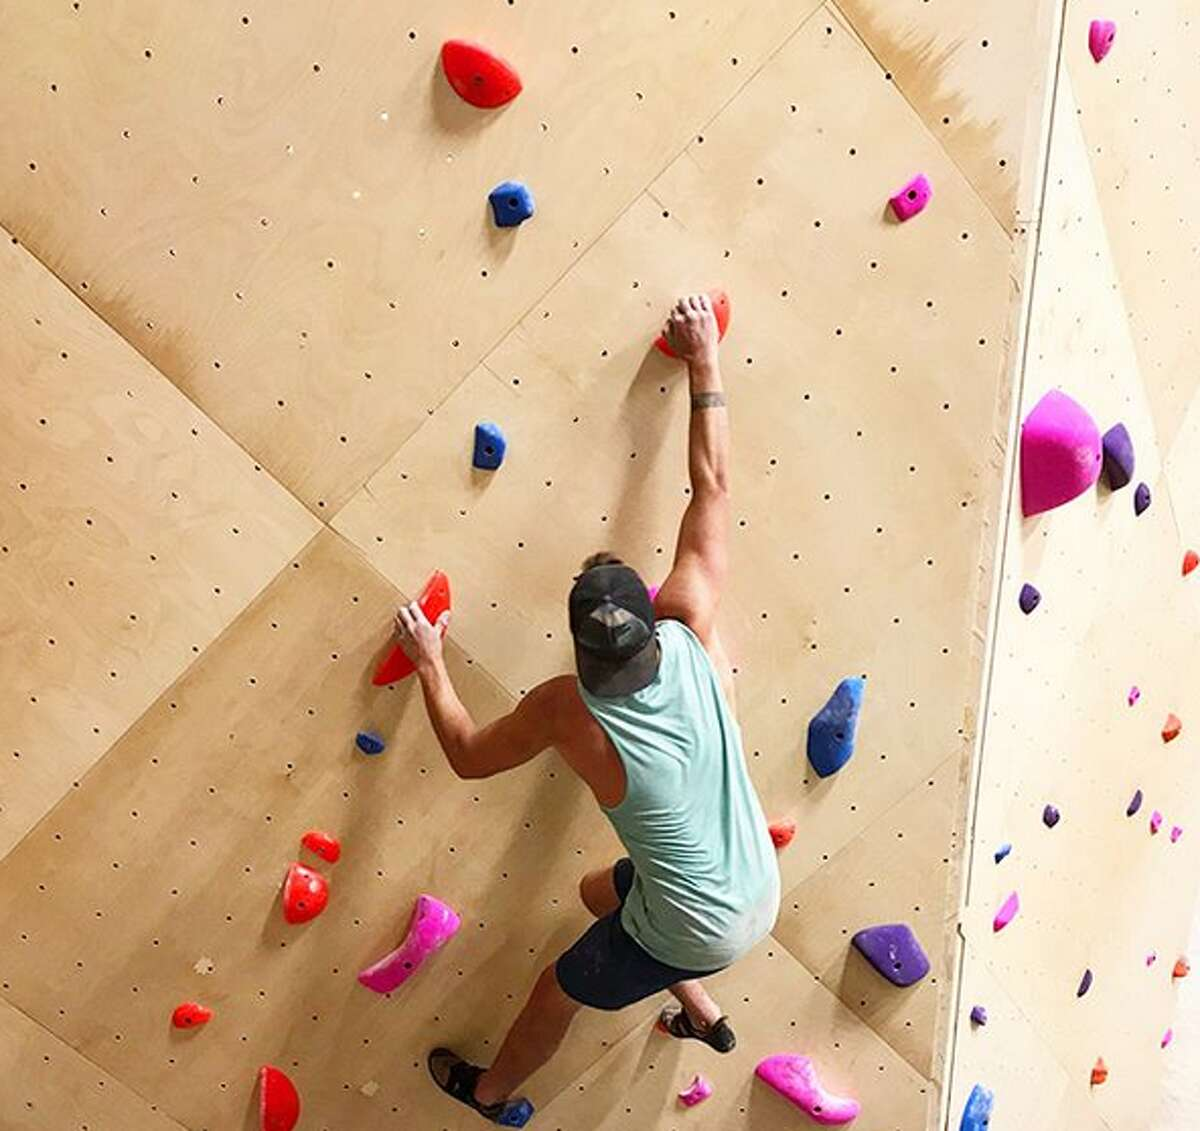 Armadillo Boulders is weeks way from opening at 1119 Camden St., owner Joe Kreidel said. He and his co-owner, Michael Cano, have spent the last couple of years working on their venture and ensuring the 5,200 square feet of walls are